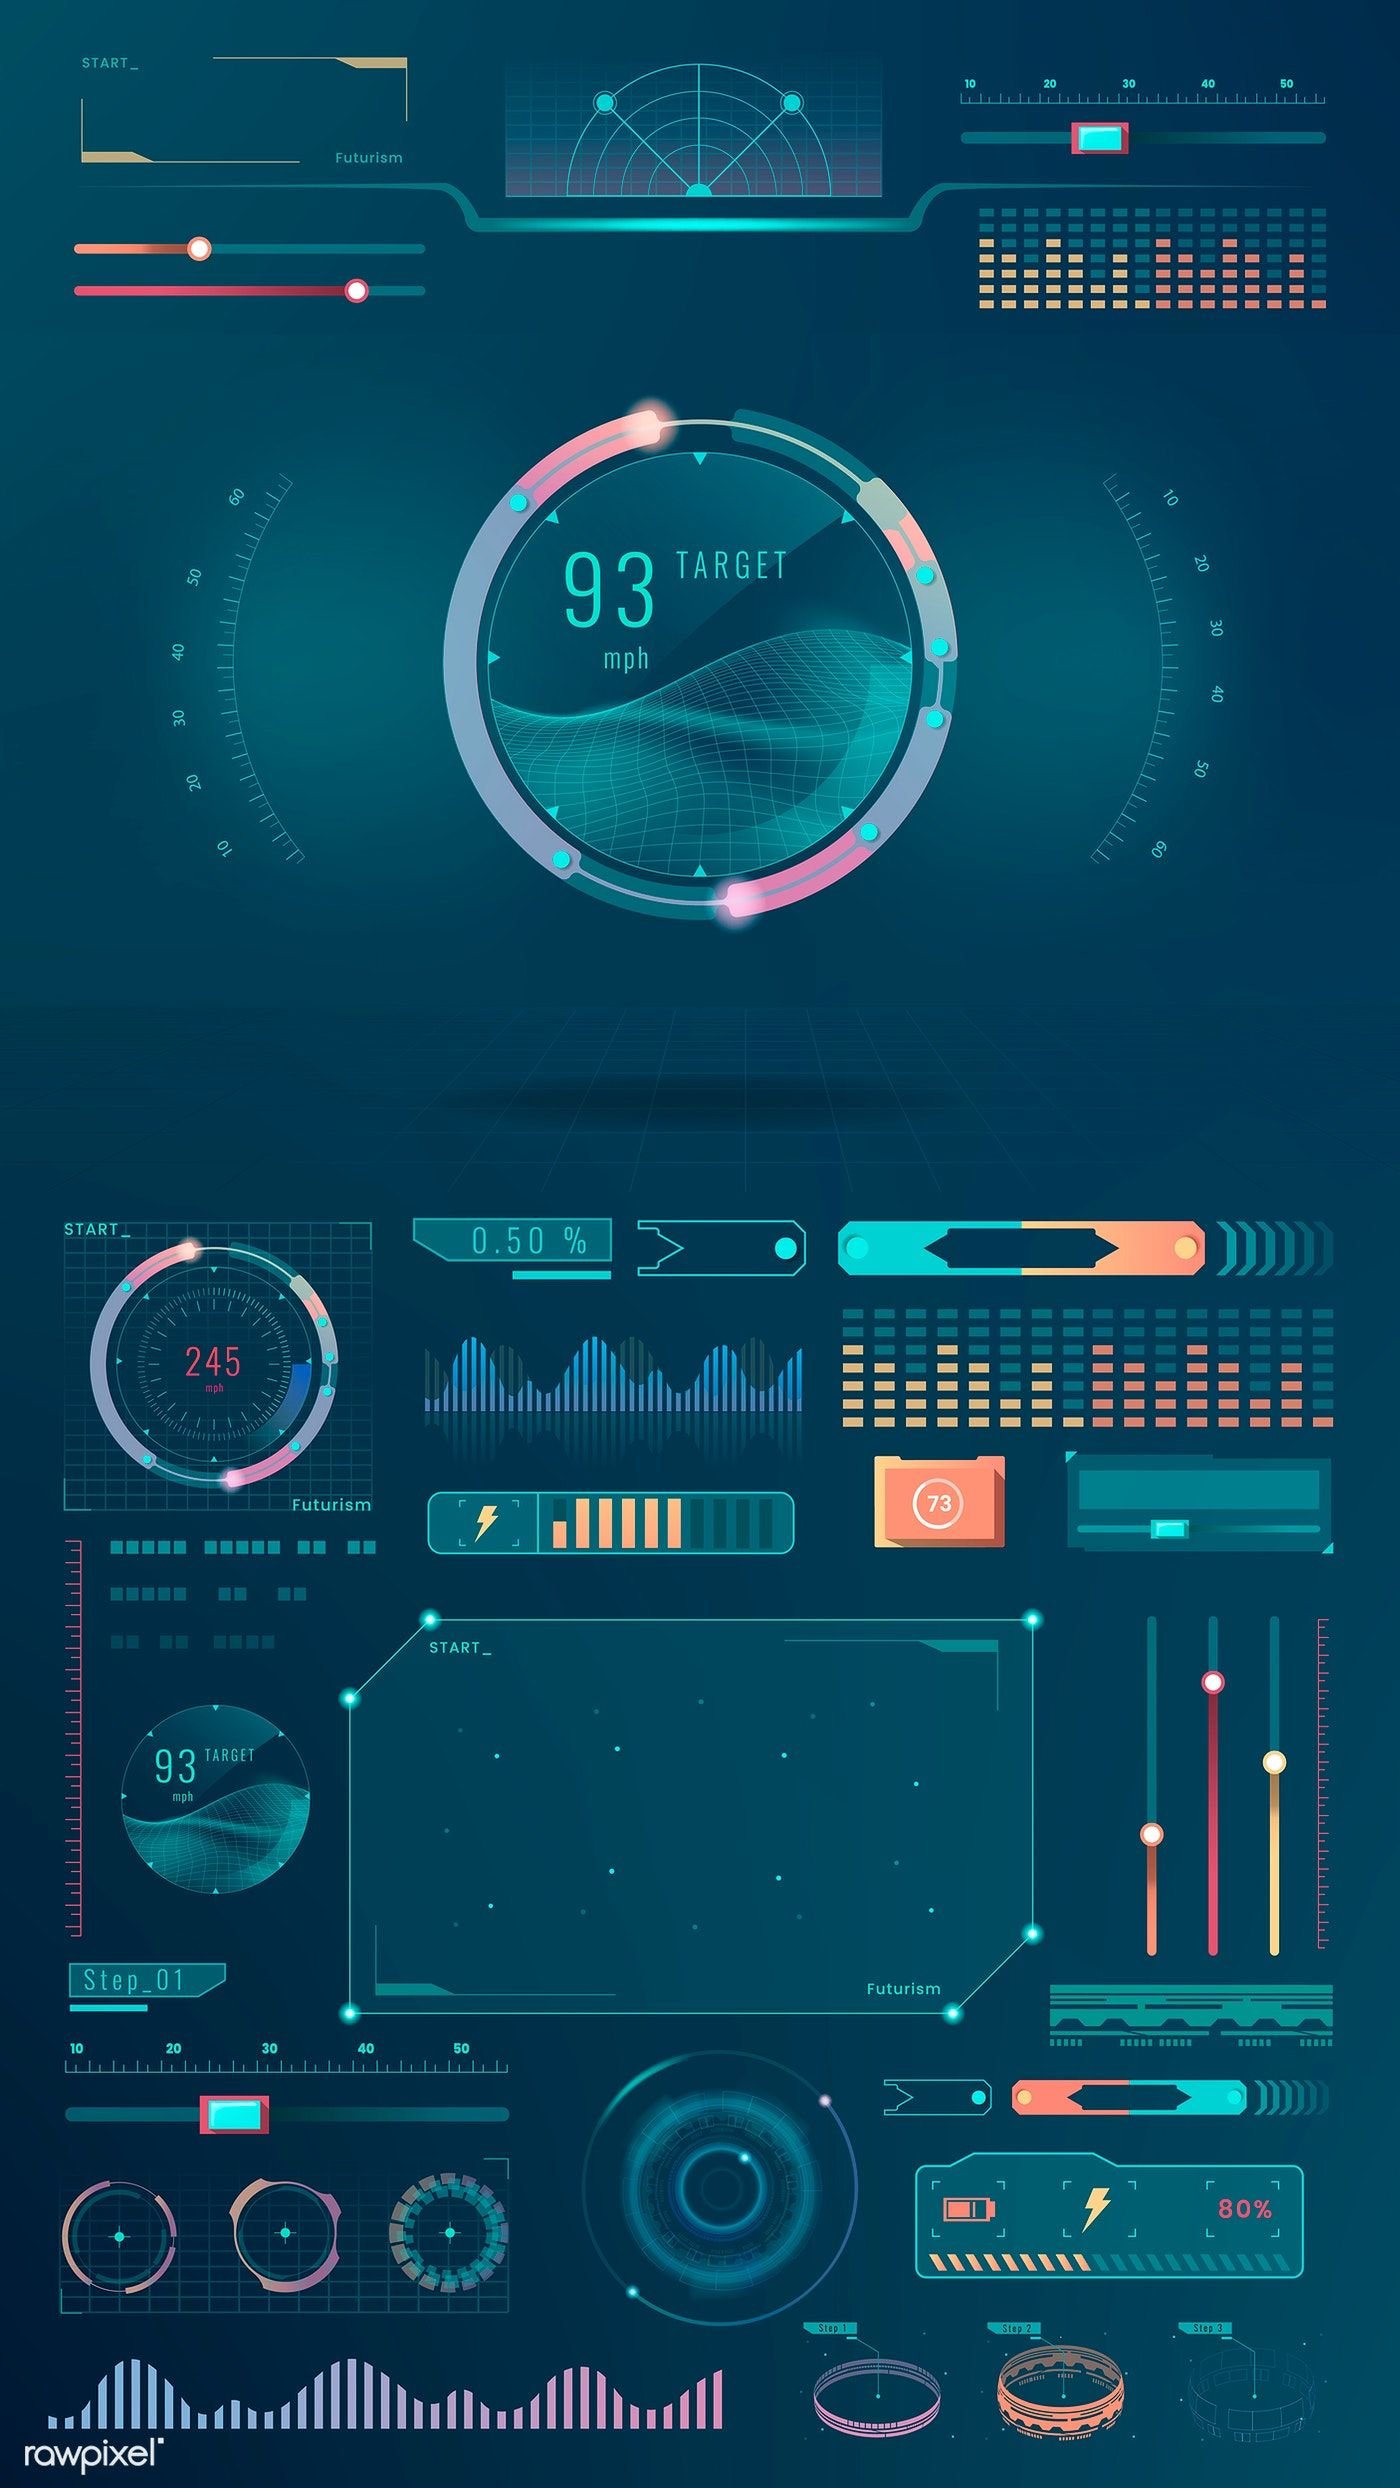 Download premium vector of Velocity technology interface template design #interfacedesign